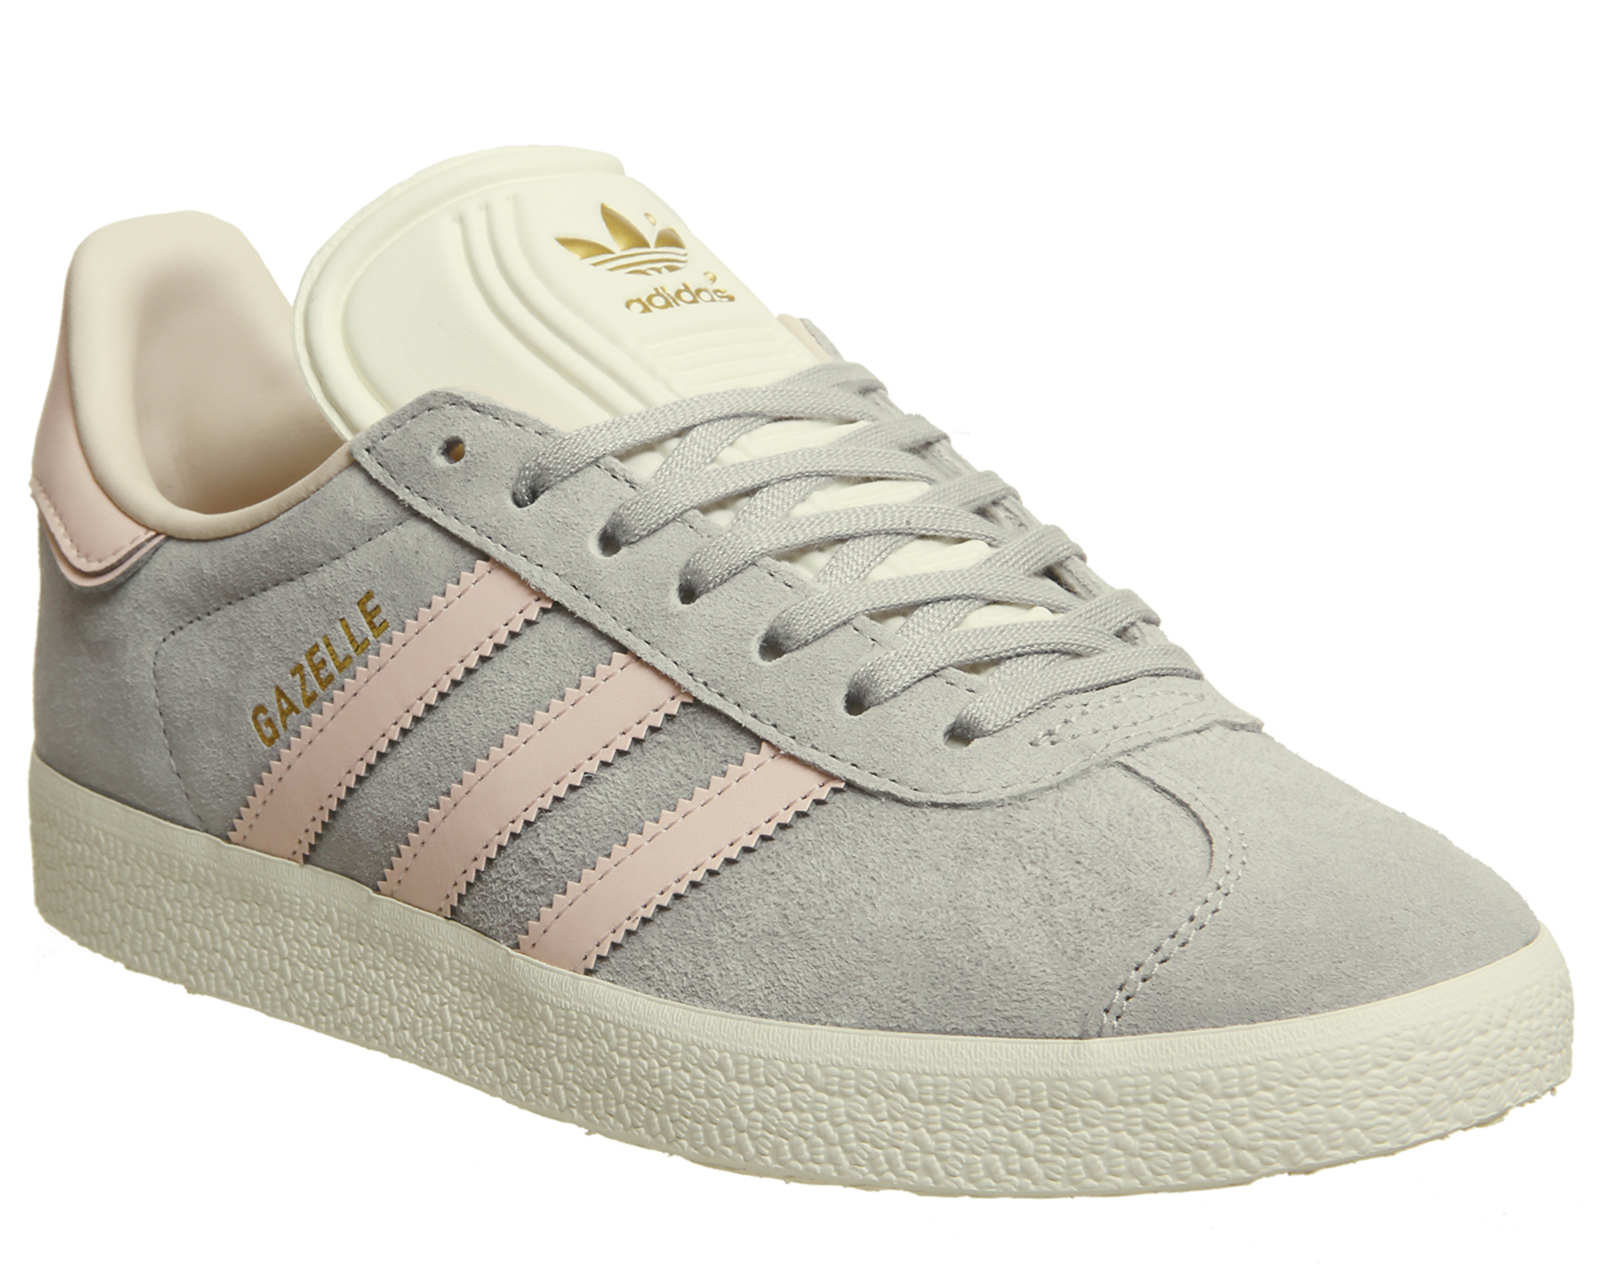 1e01c5e7d533 Sentinel Womens Adidas Gazelle Trainers Grey Two Icey Pink Cream White  Exclusive Trainers